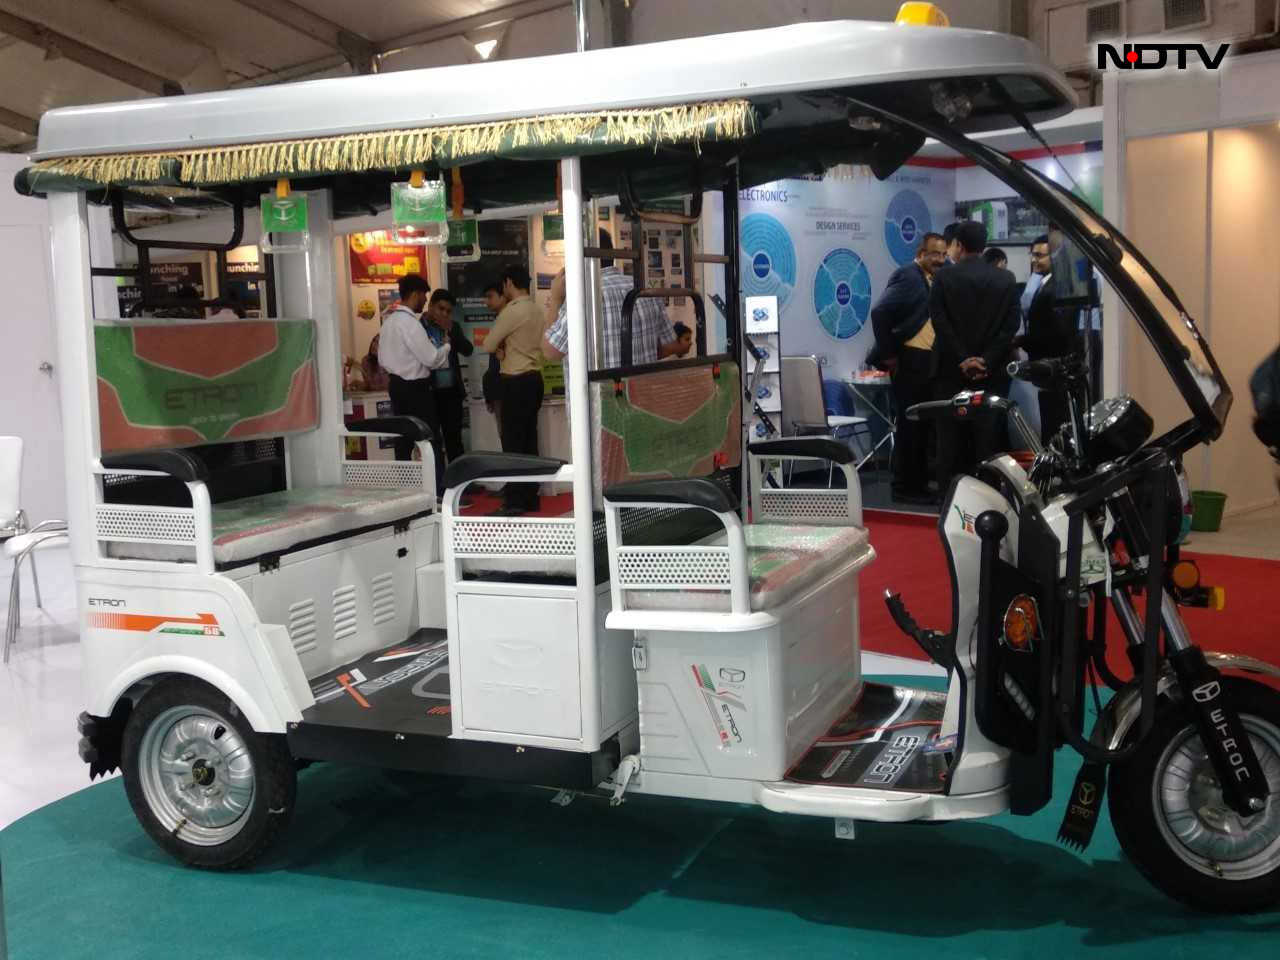 India's Push To Go Electric: Five Places Where Non-Polluting Electric Vehicles Have Been Deployed